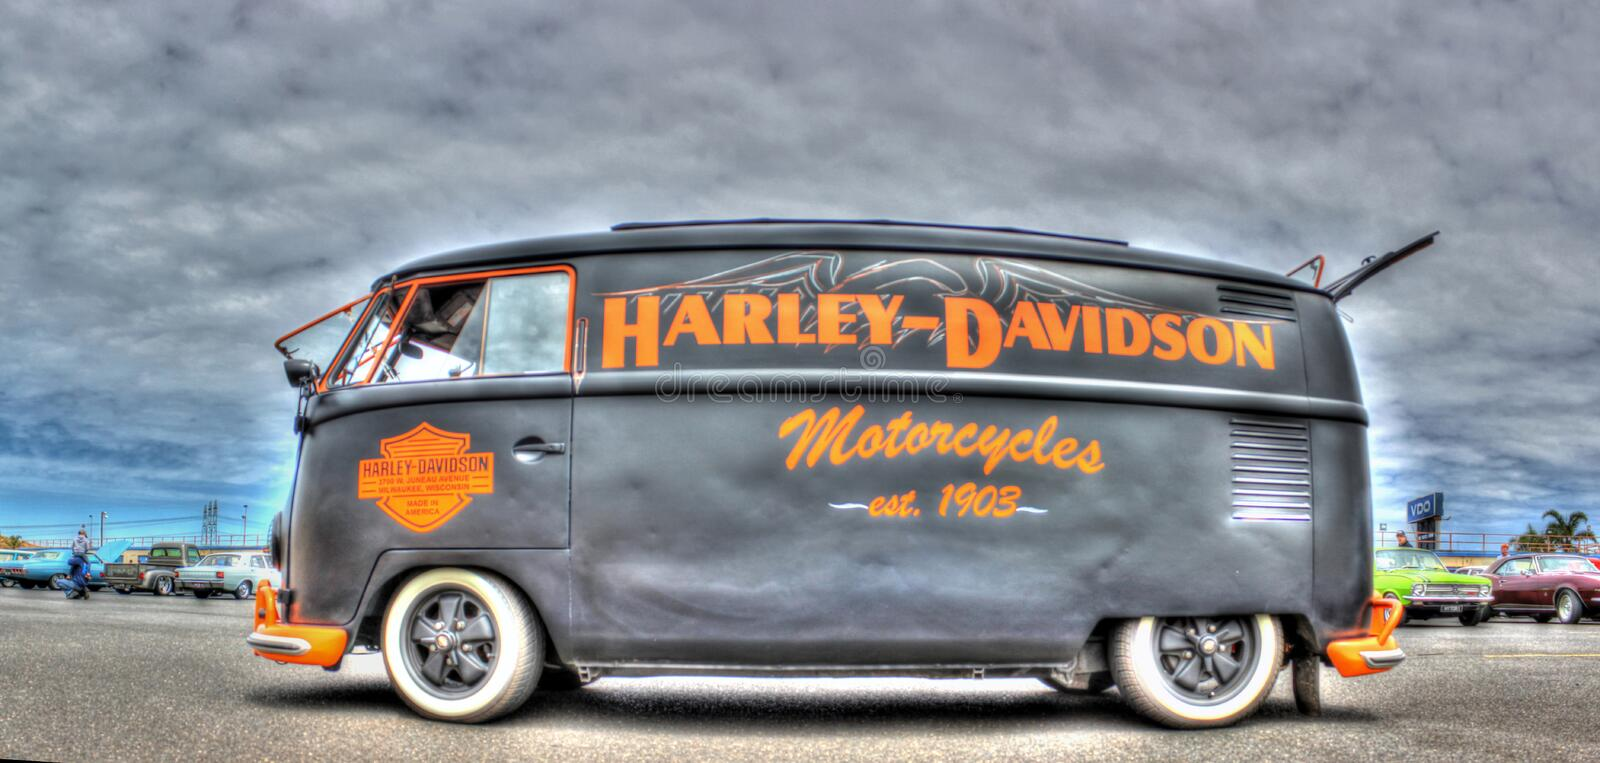 VW Kombi painted in Harley Davidson Colors. A custom painted VW Kombi in the black and orange colors of Harley Davidson motorcycles on display at car show held royalty free stock photo